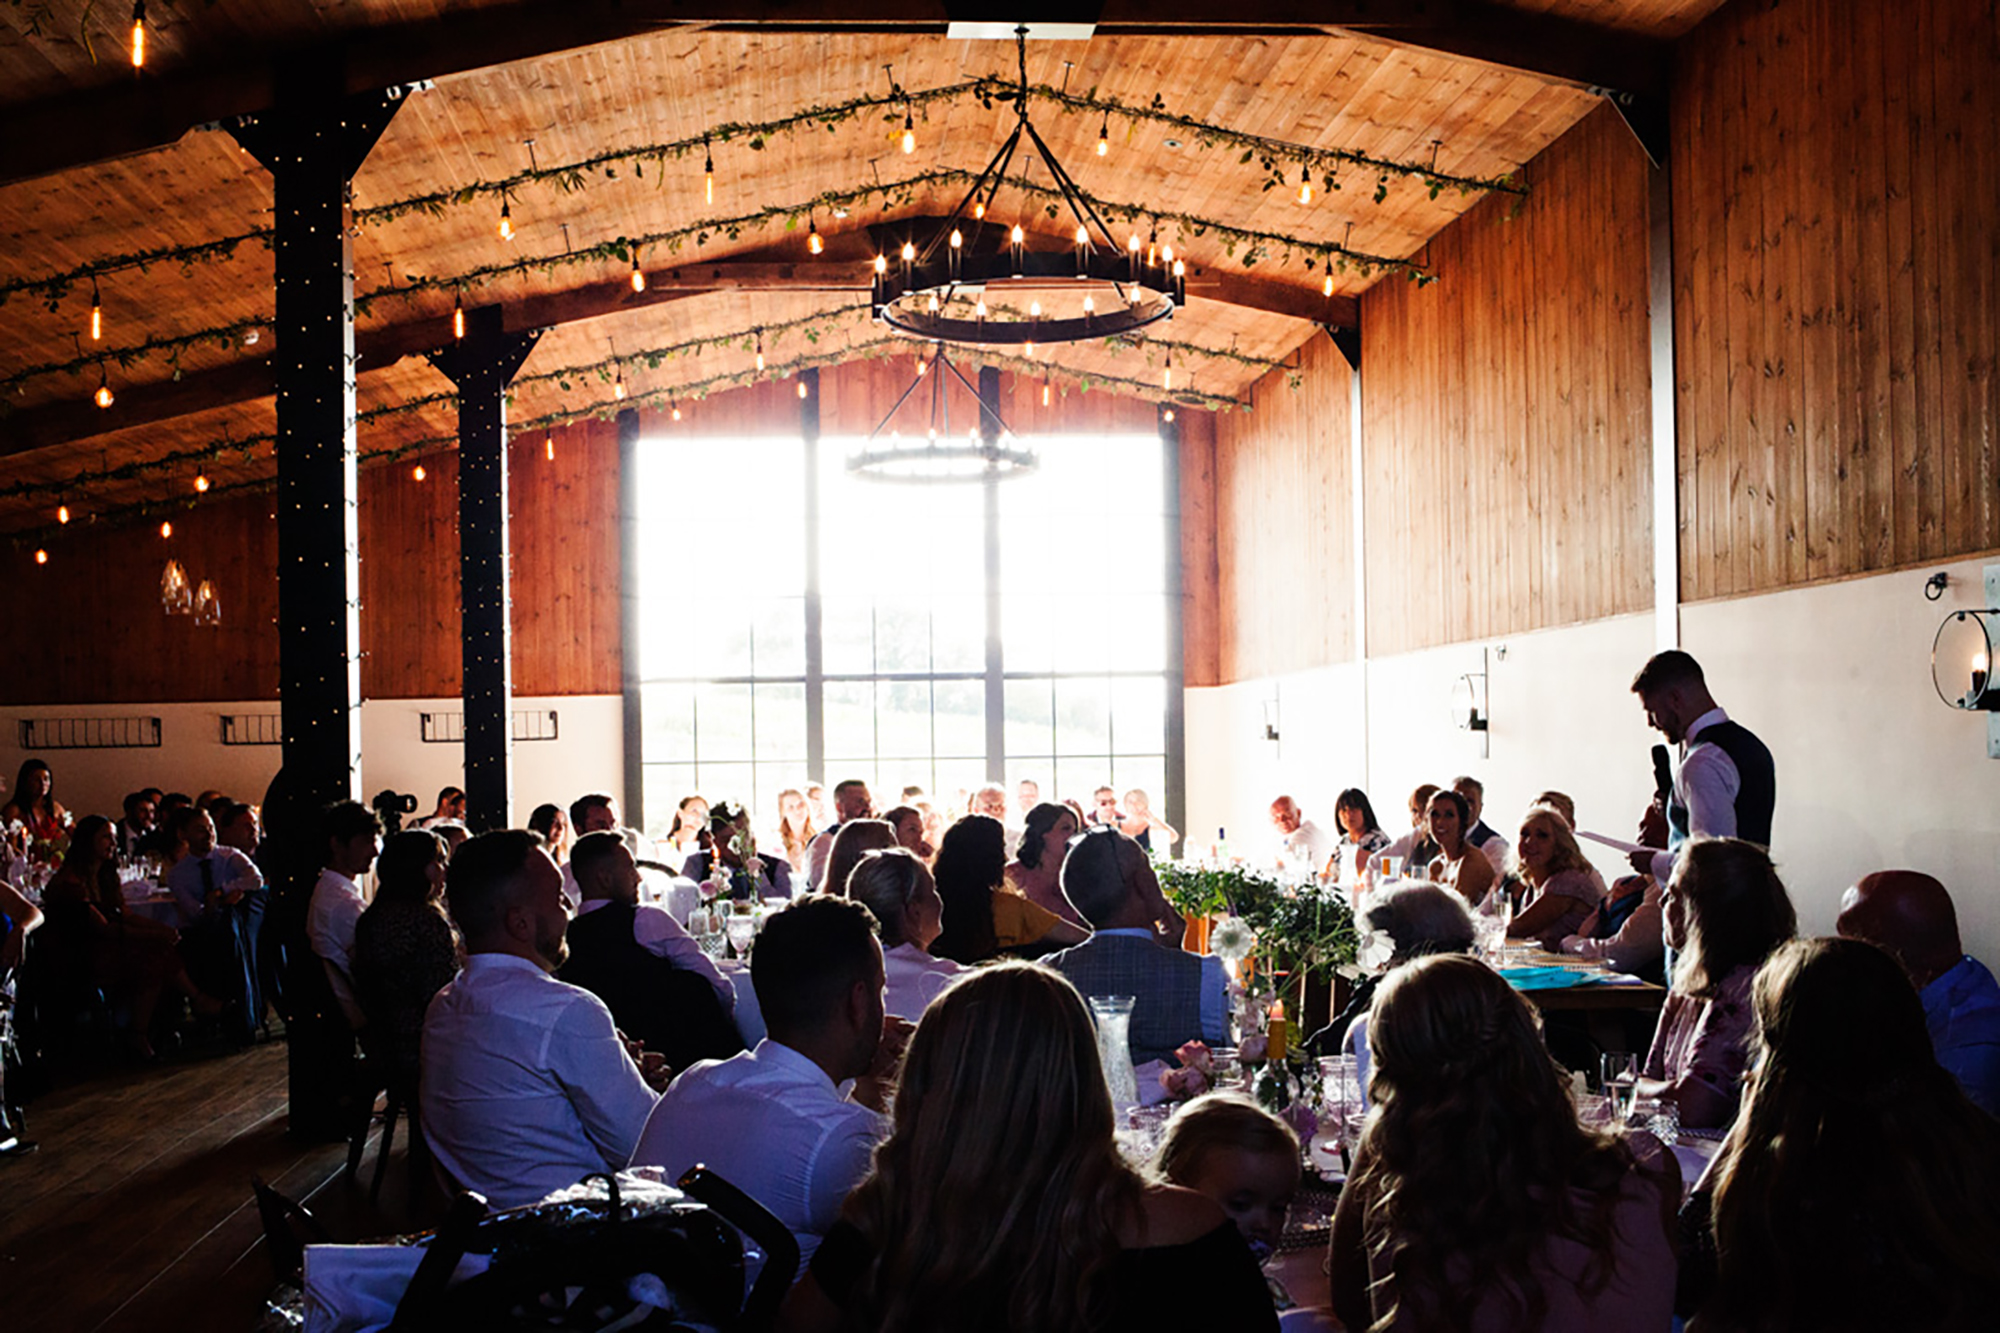 Best man delivers speech from top table in The Stable Barn as seated wedding guest look on